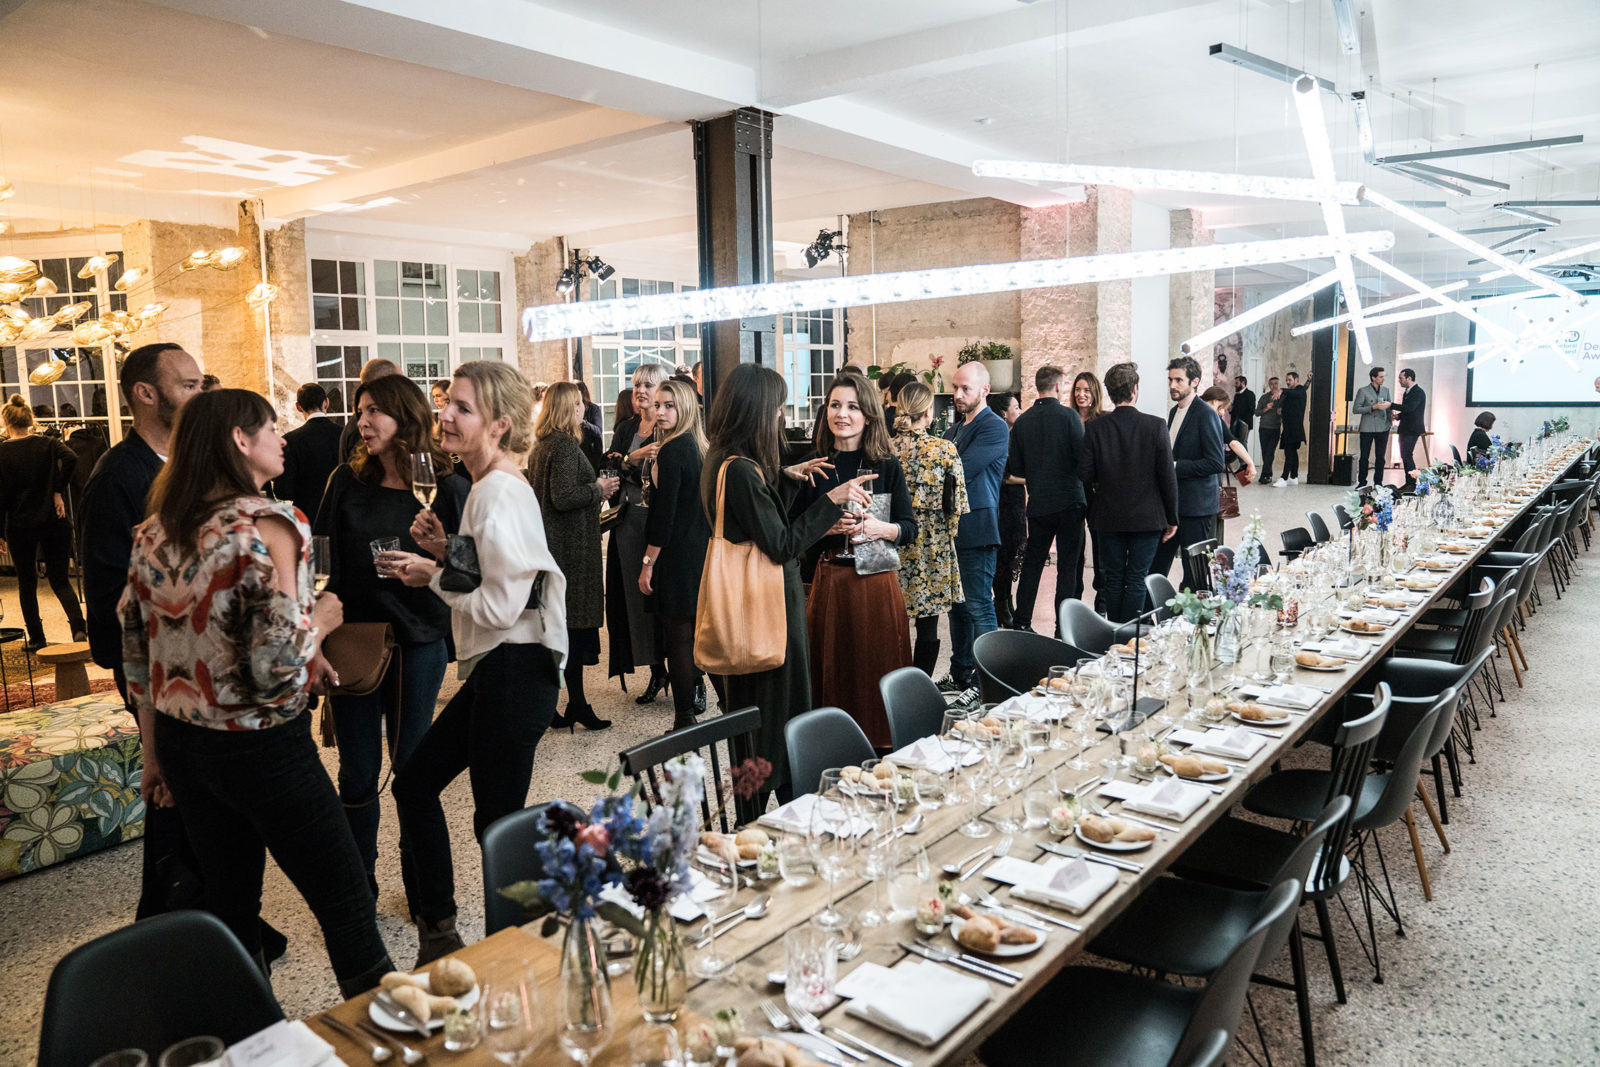 Architectural Digest - Dinner and Award Ceremony